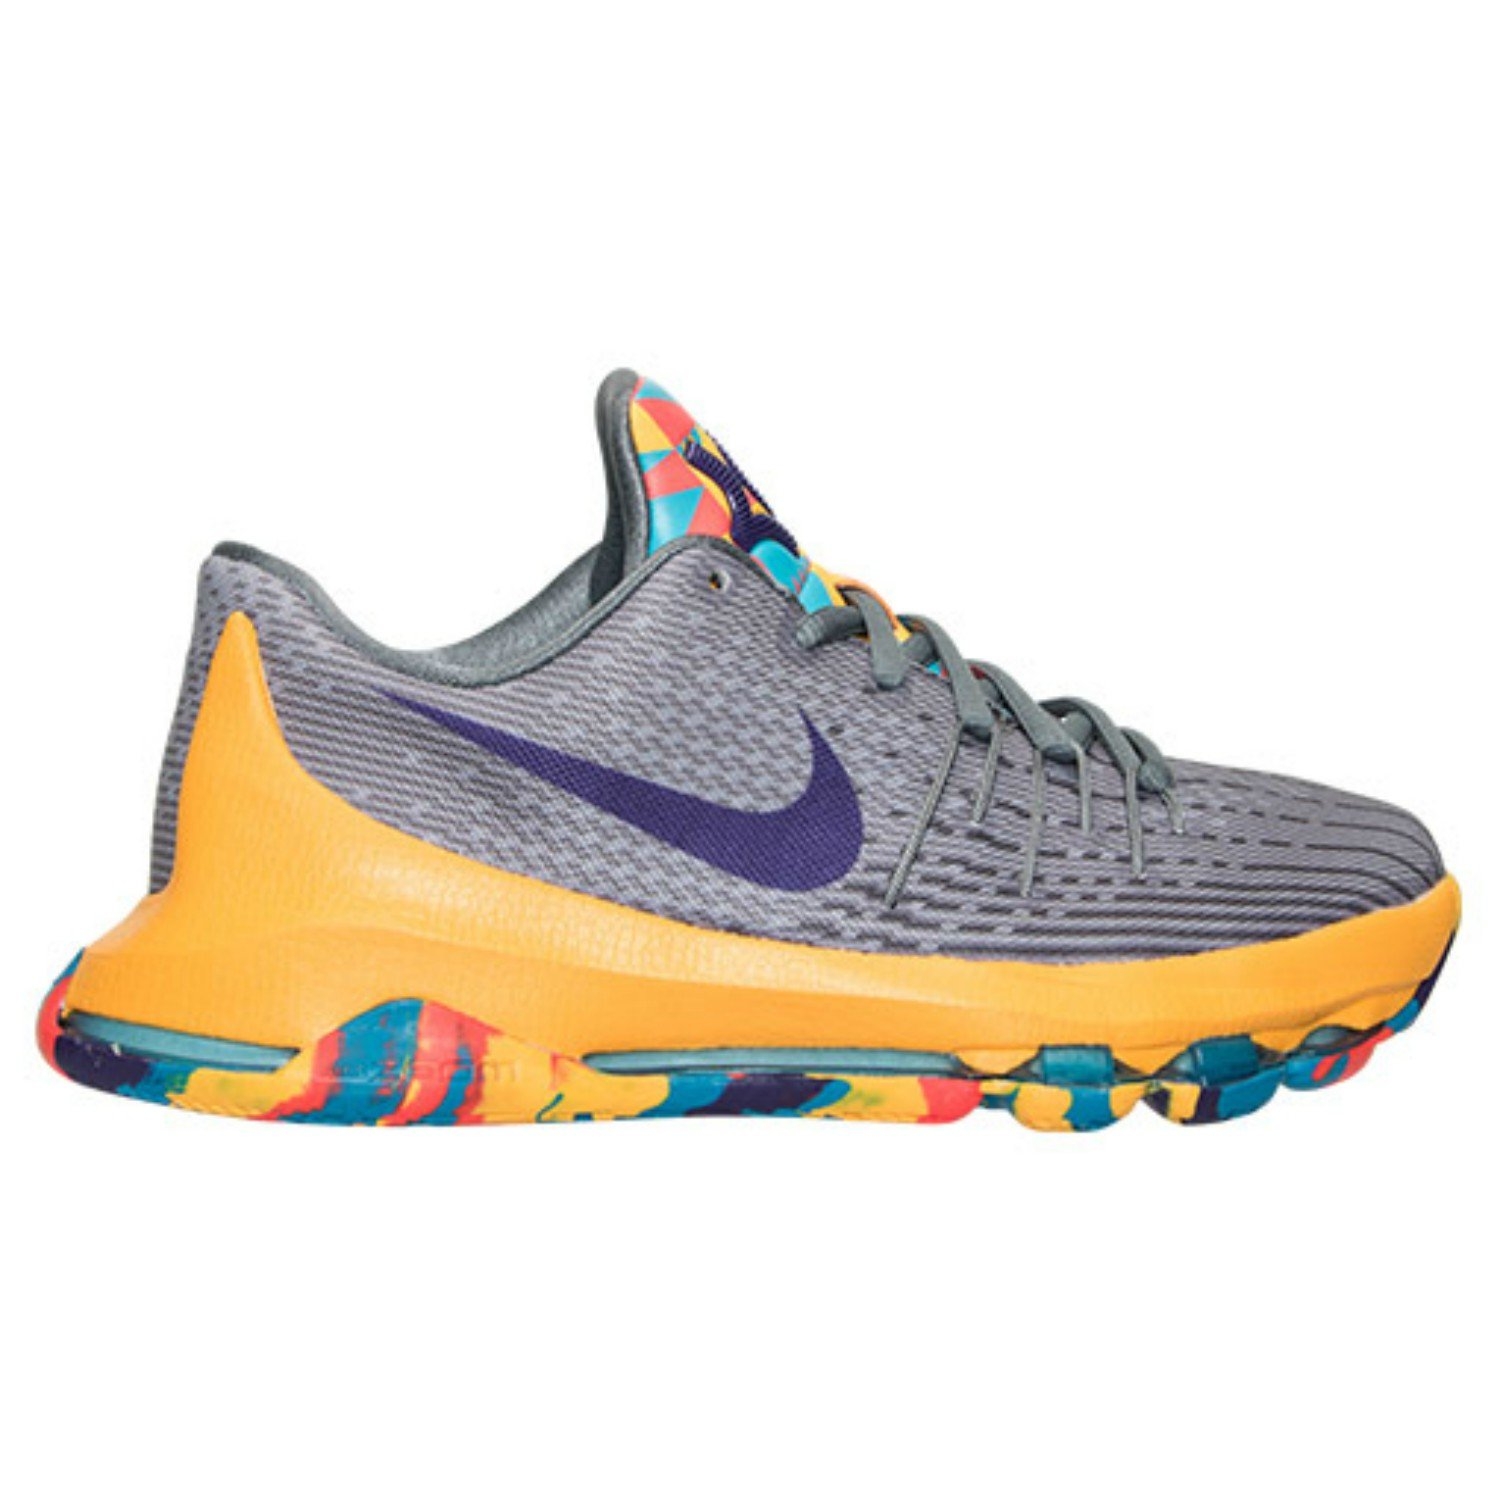 new arrival ec5dc 61f58 Nike KD 8 (GS) Grey/Yellow Kevin Durant Basketball Unisex Youth Size 4.5